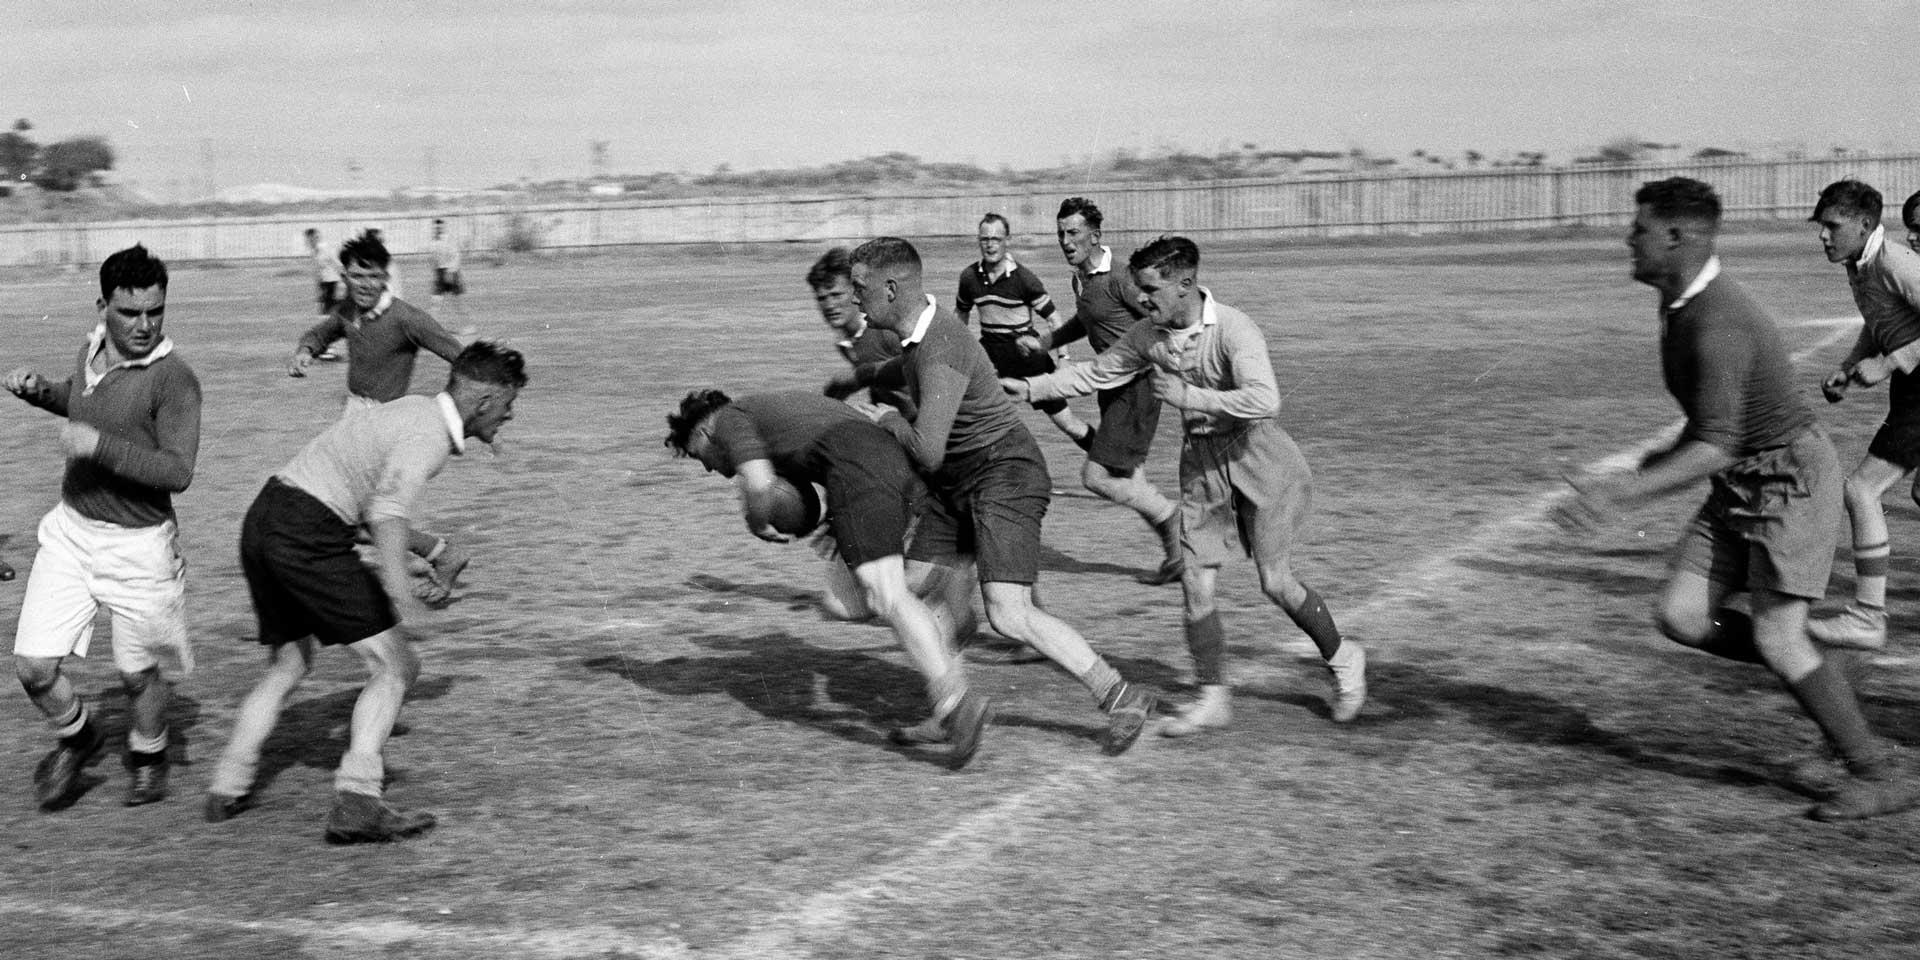 Rugby match featuring members of the 3rd County of London Yeomanry (Sharpshooters), c1942